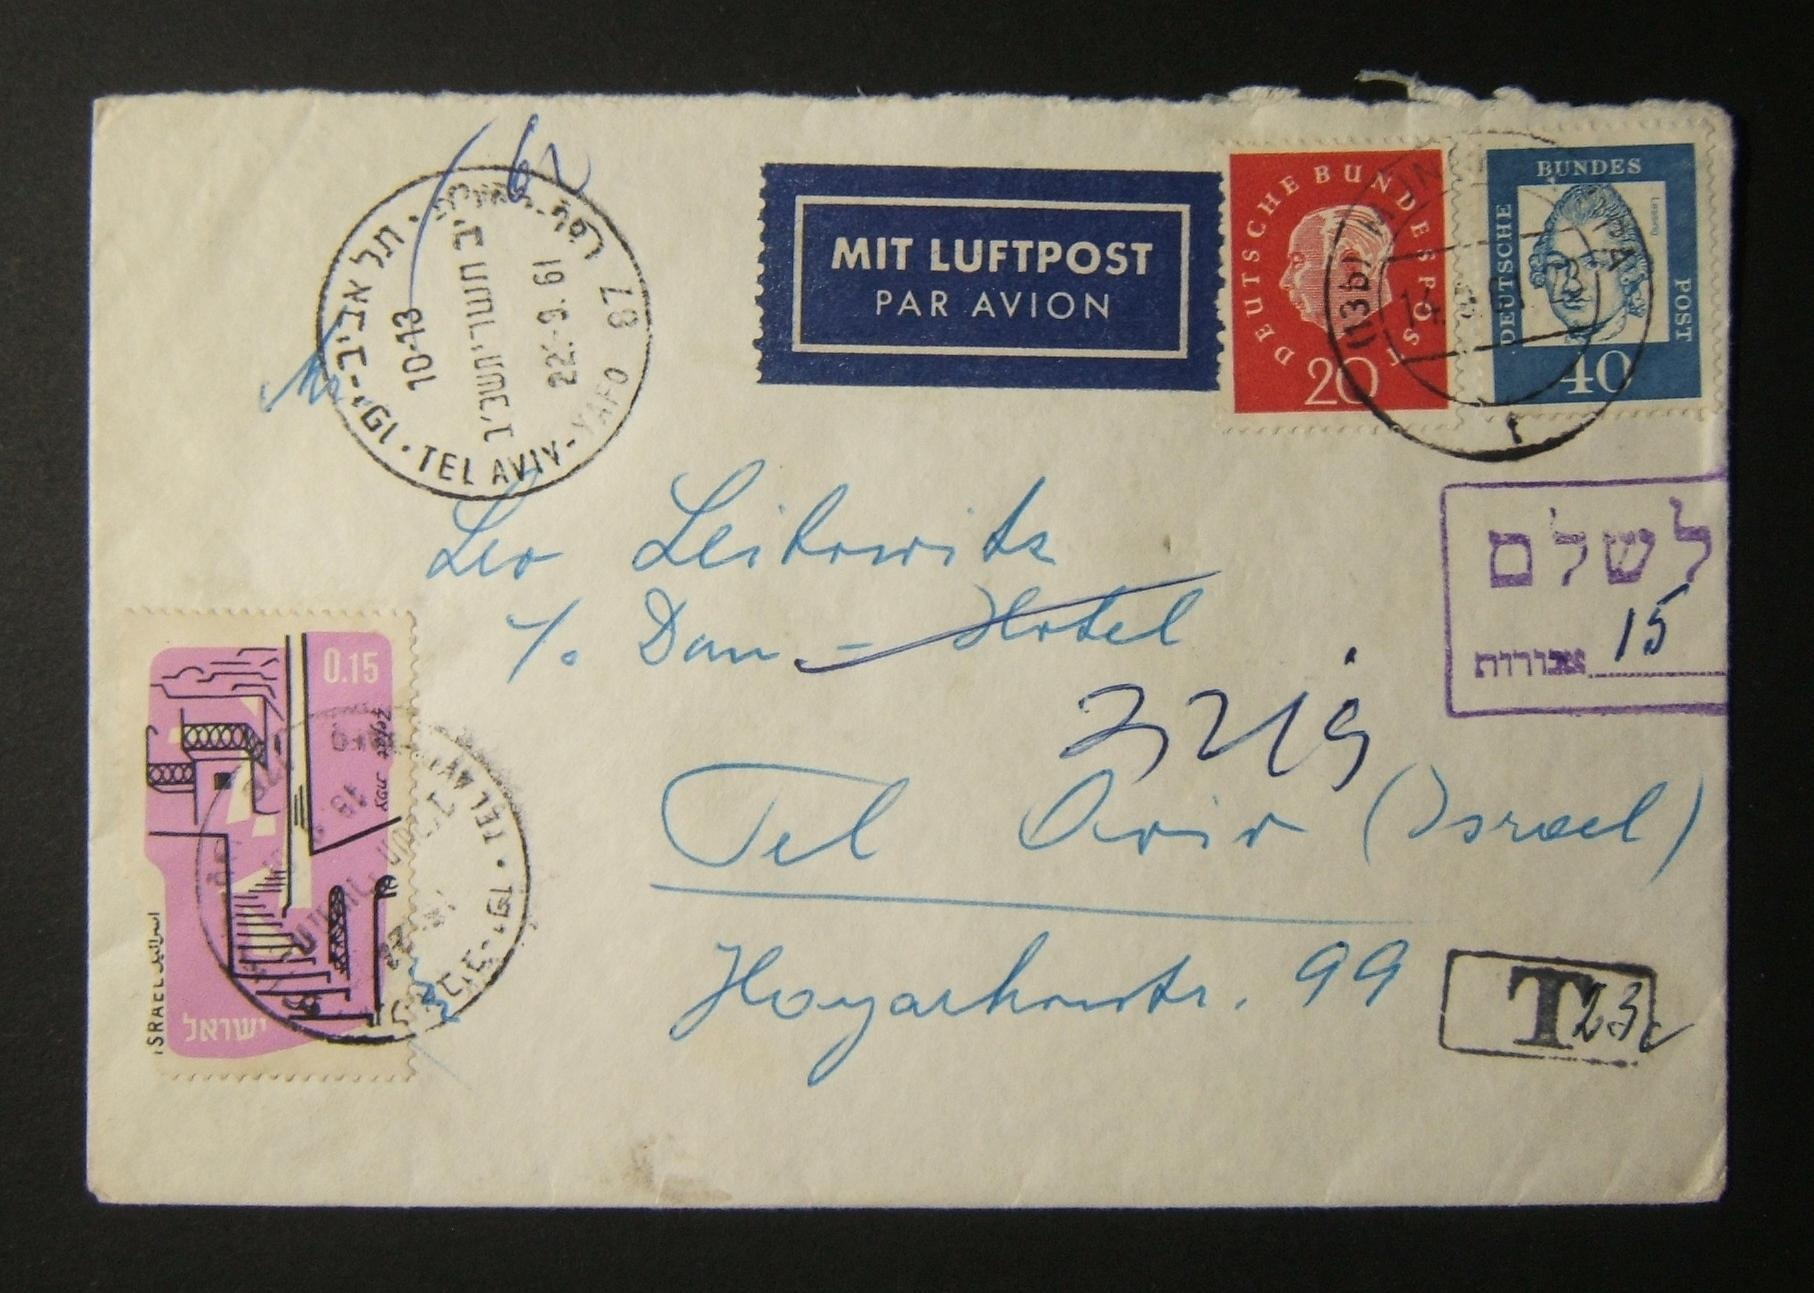 1961 incoming German postage due mail: 14-9-61 airmail cover ex MUNICH to TLV underfranked at 60pf and marked 23pf by German tax cachet; 15 Ag tax paid in TLV 18-9-61 using sgl 196